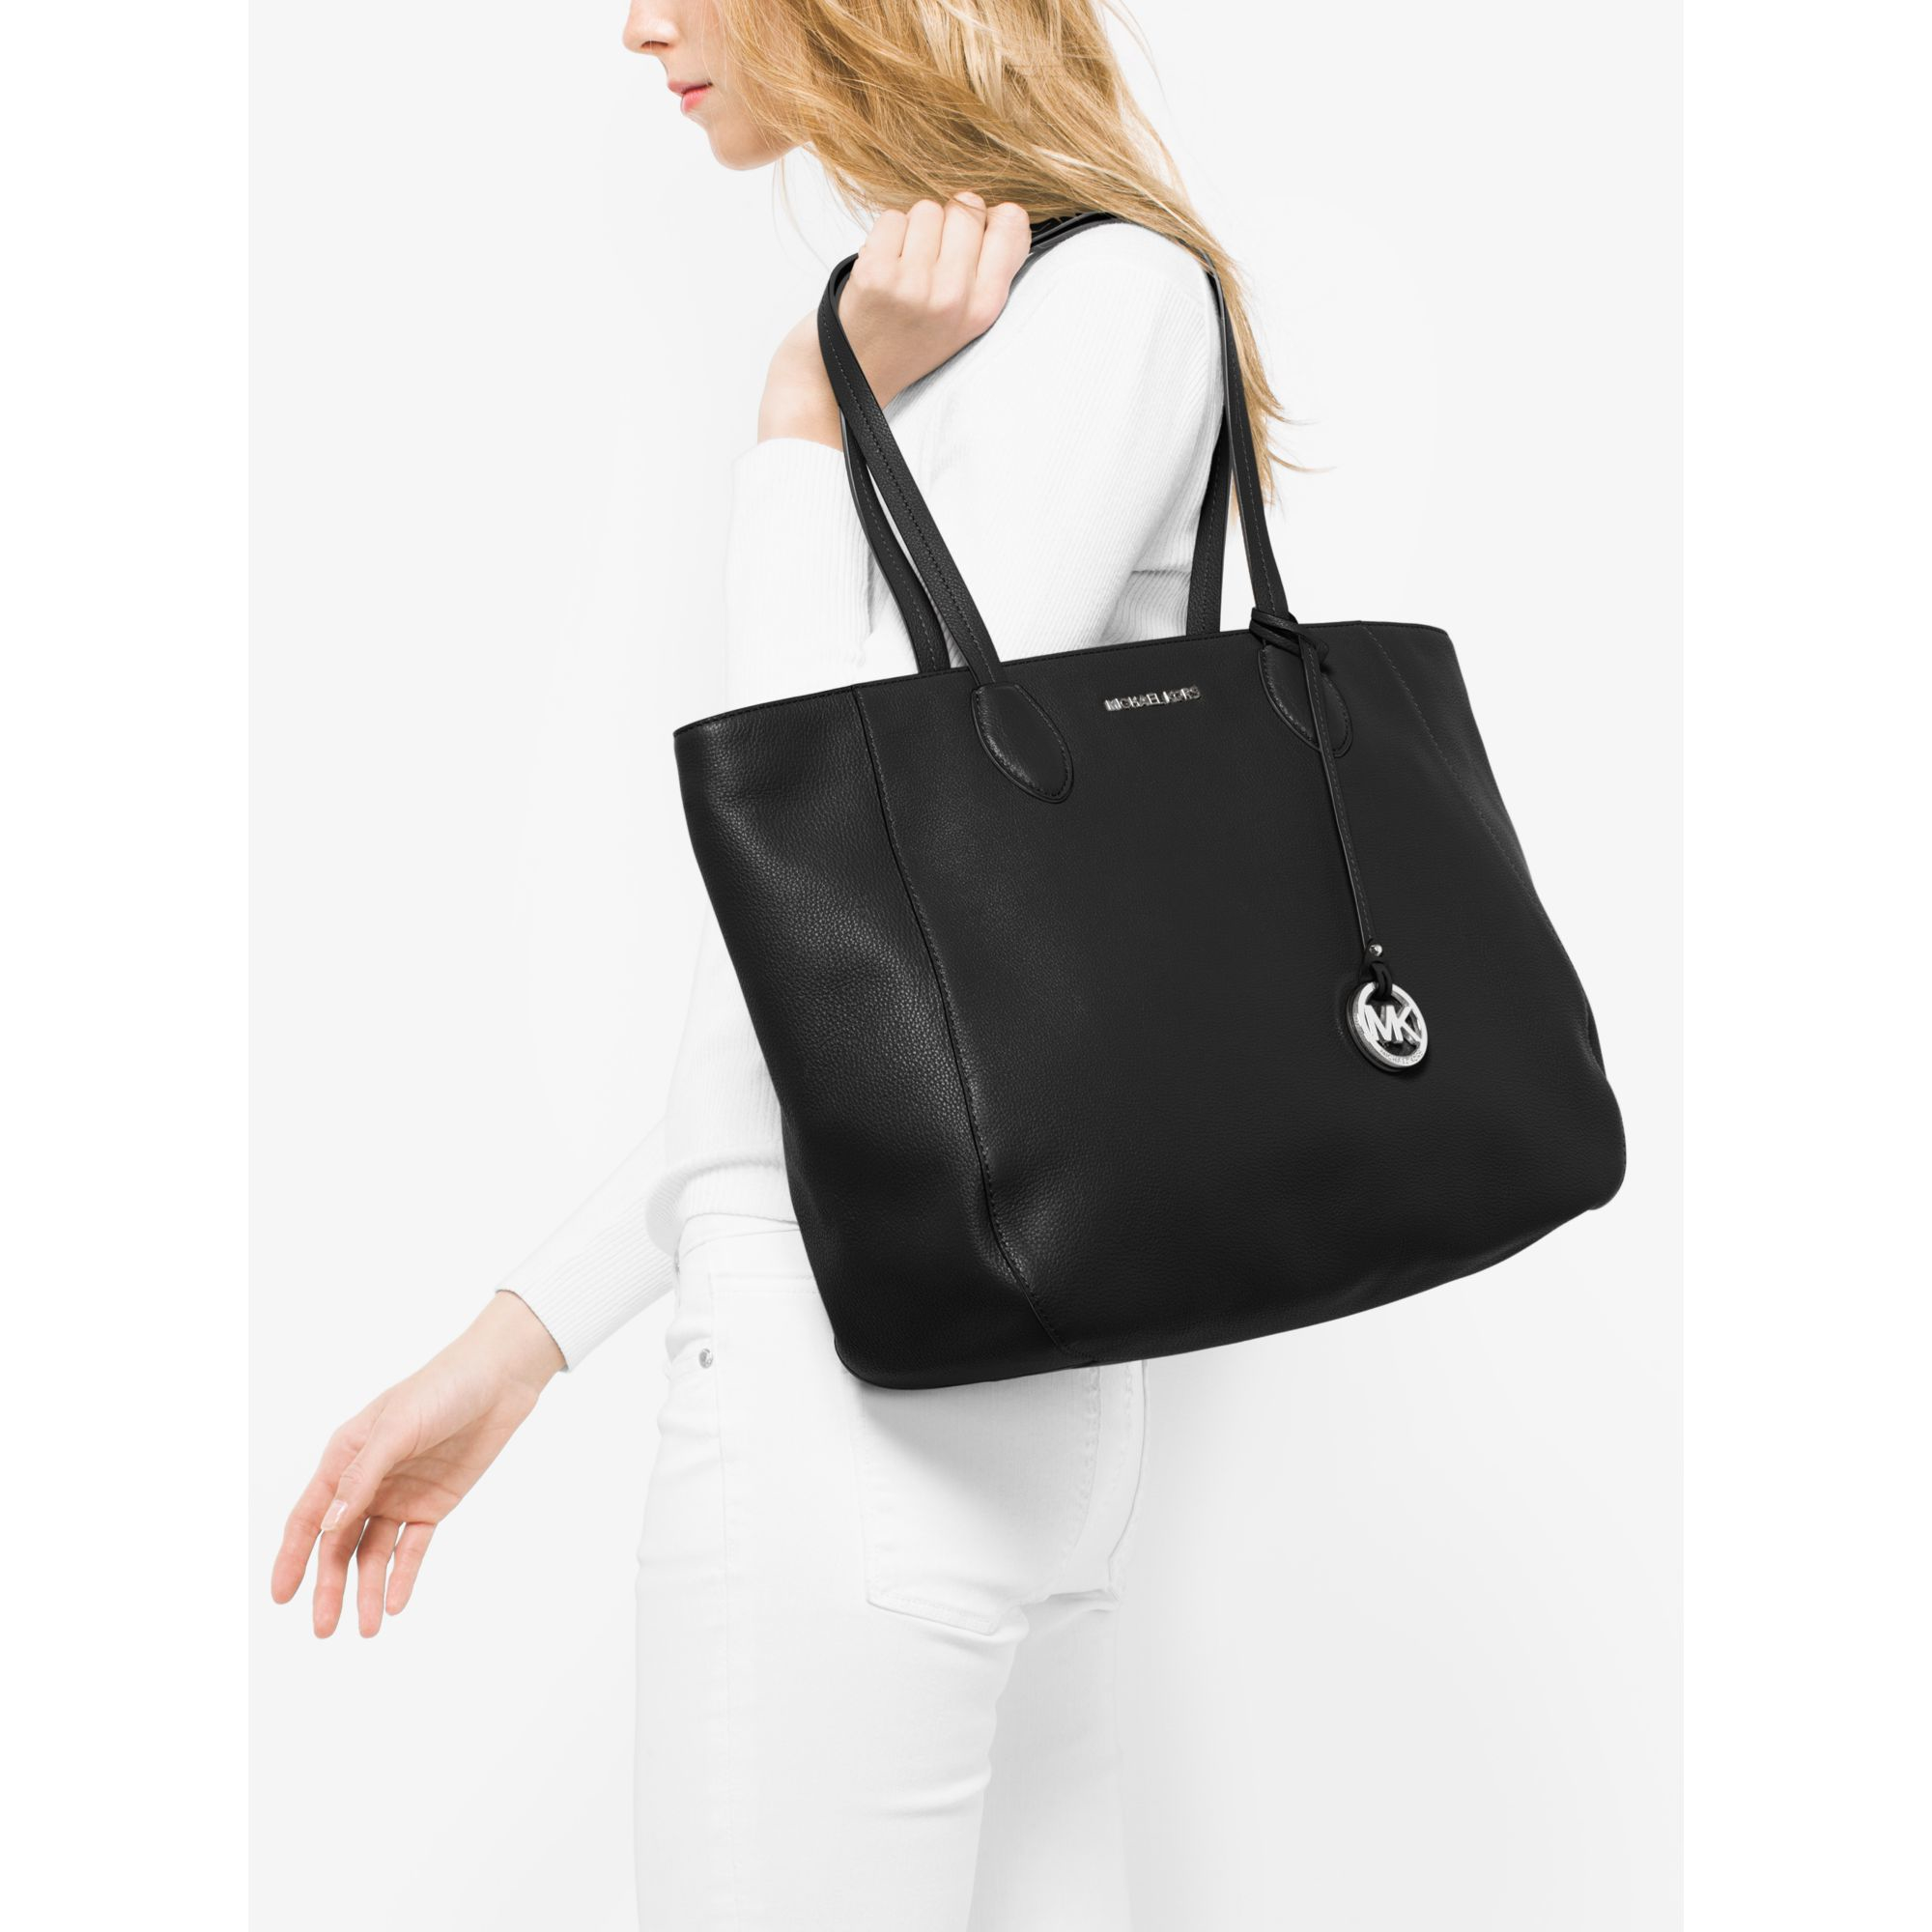 537914f4d5b249 coupon code for lyst michael kors ani large leather tote in black 8d905  9fb17